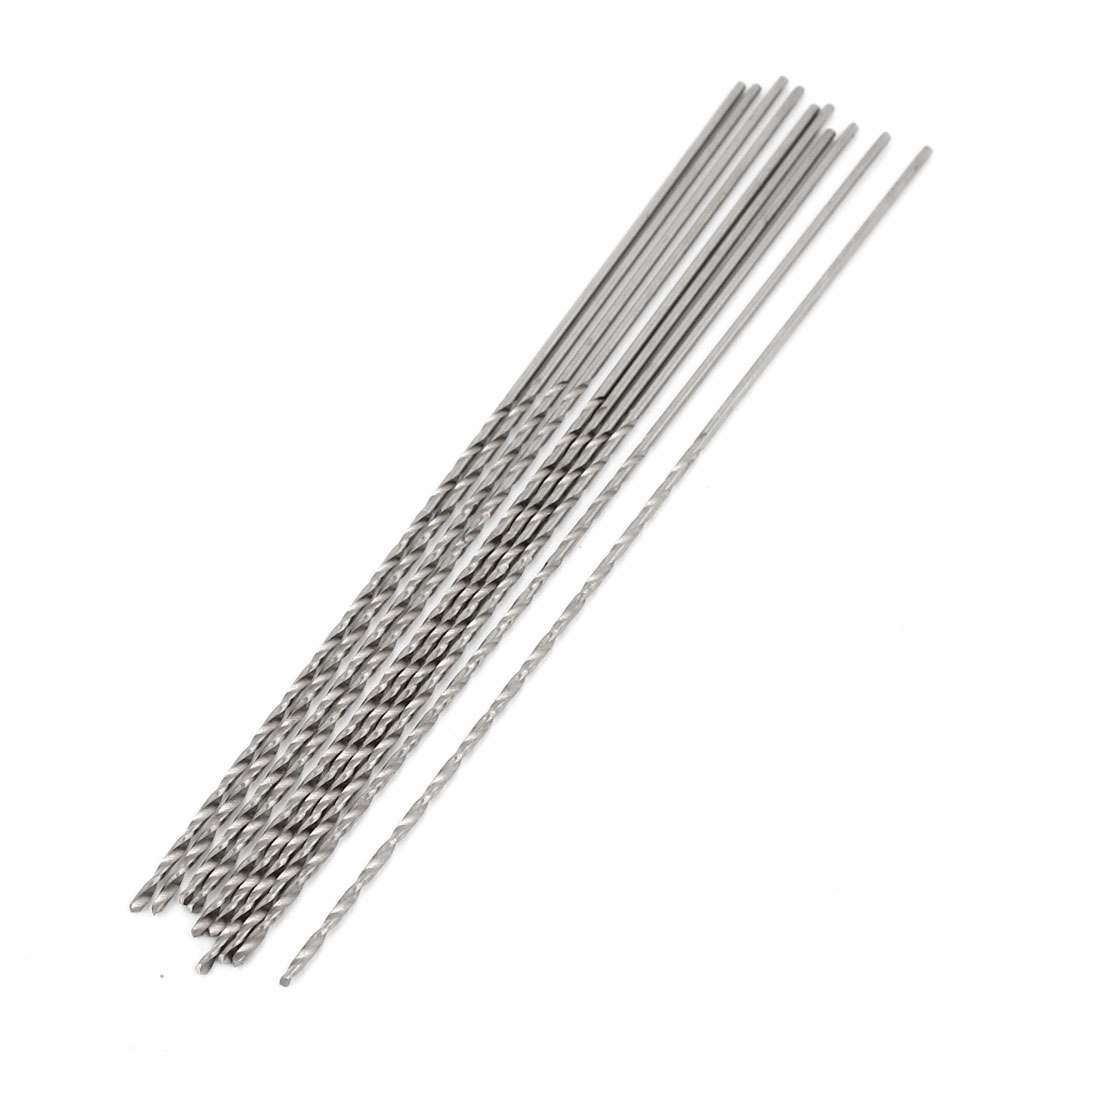 High Speed Steel 1mm x 60mm Tip Straight Shank Twist Drill Bit 10pcs